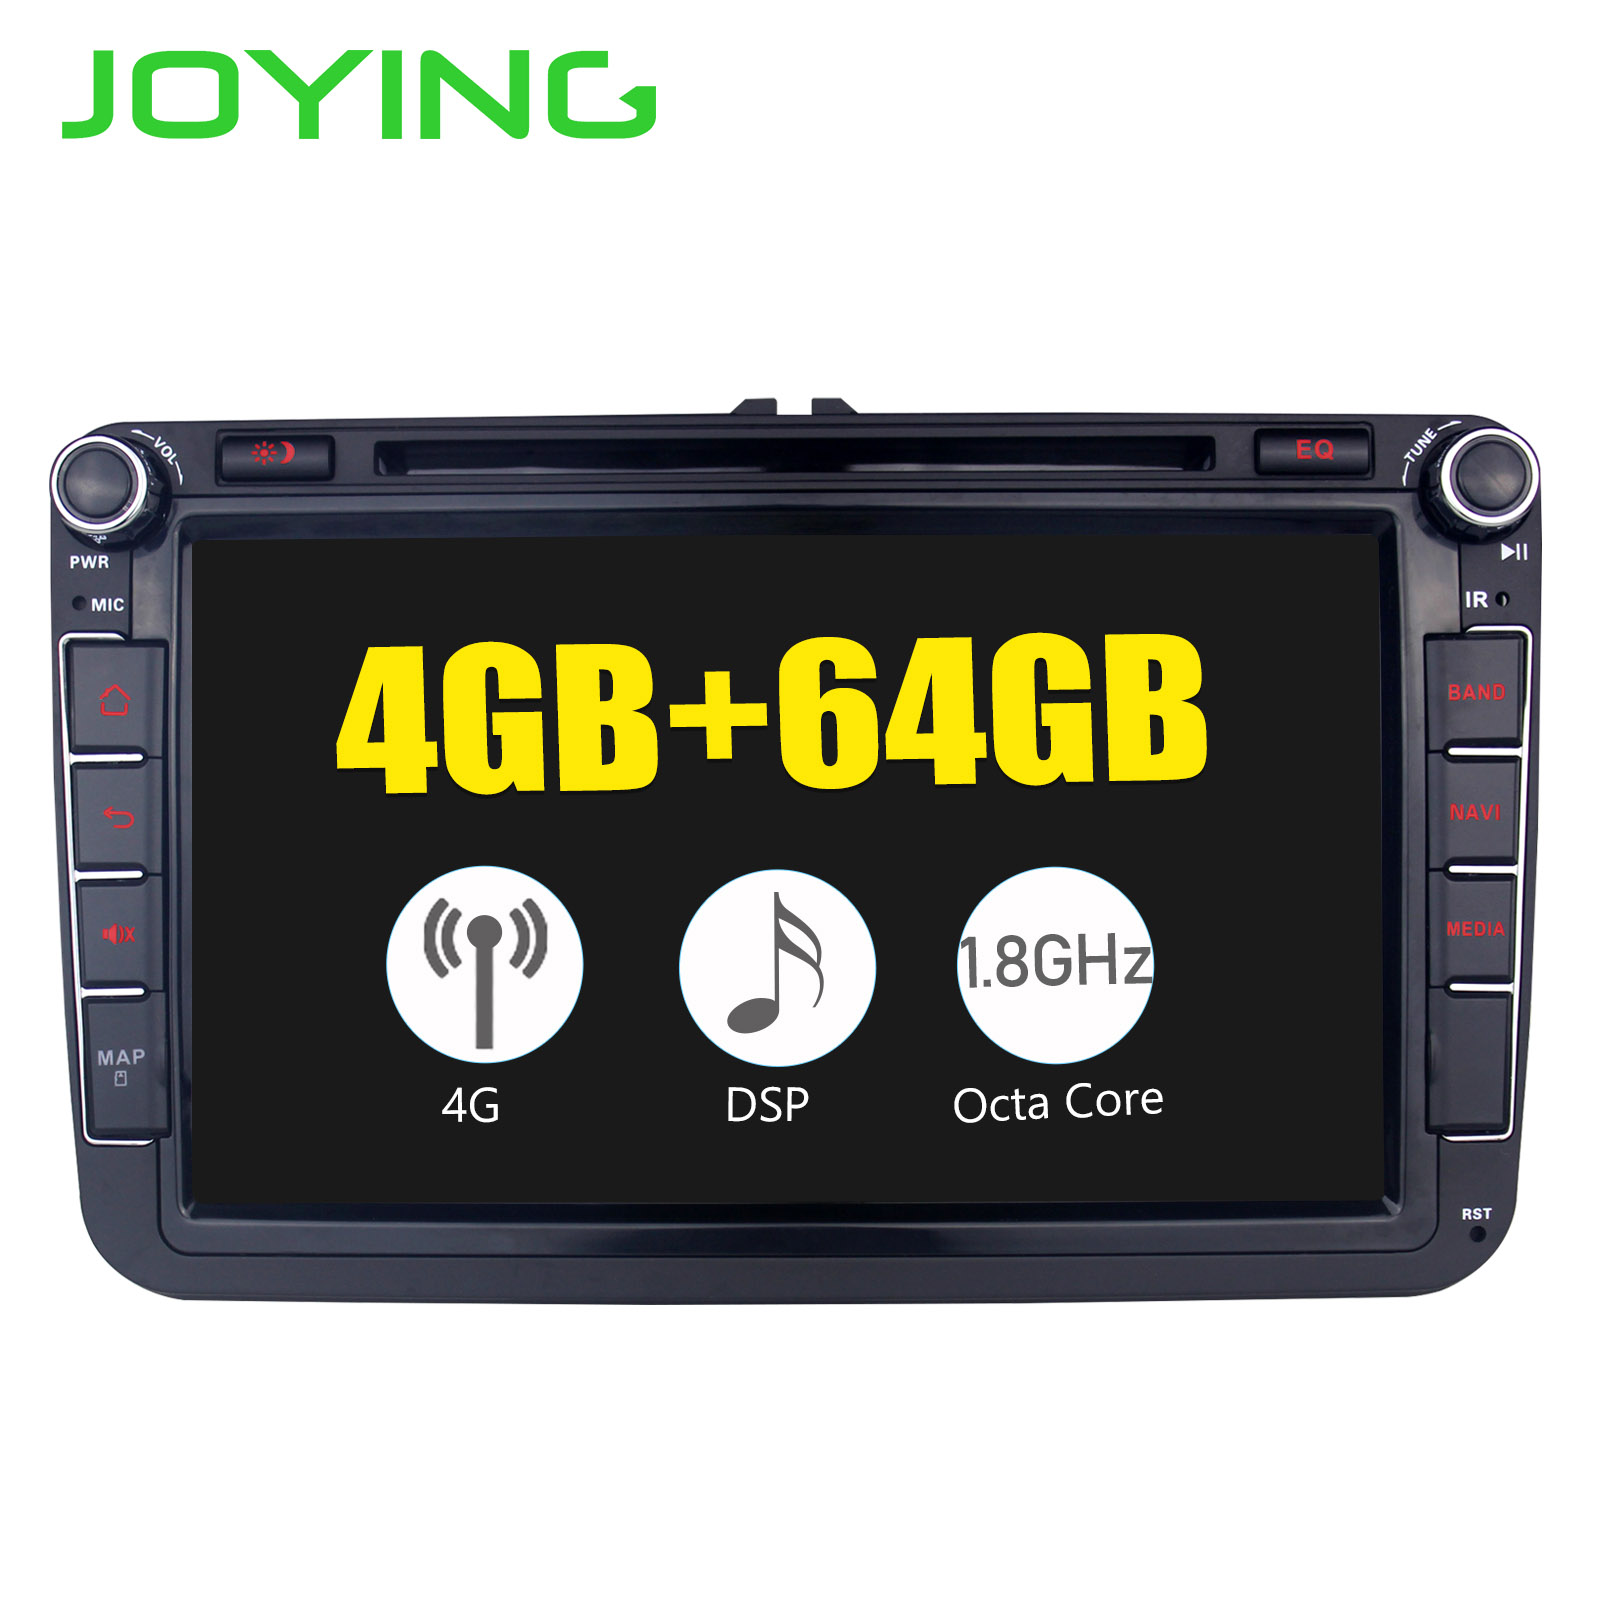 JOYING 4GB Android 8 1 car radio GPS player 8 core head unit with SPDIF for